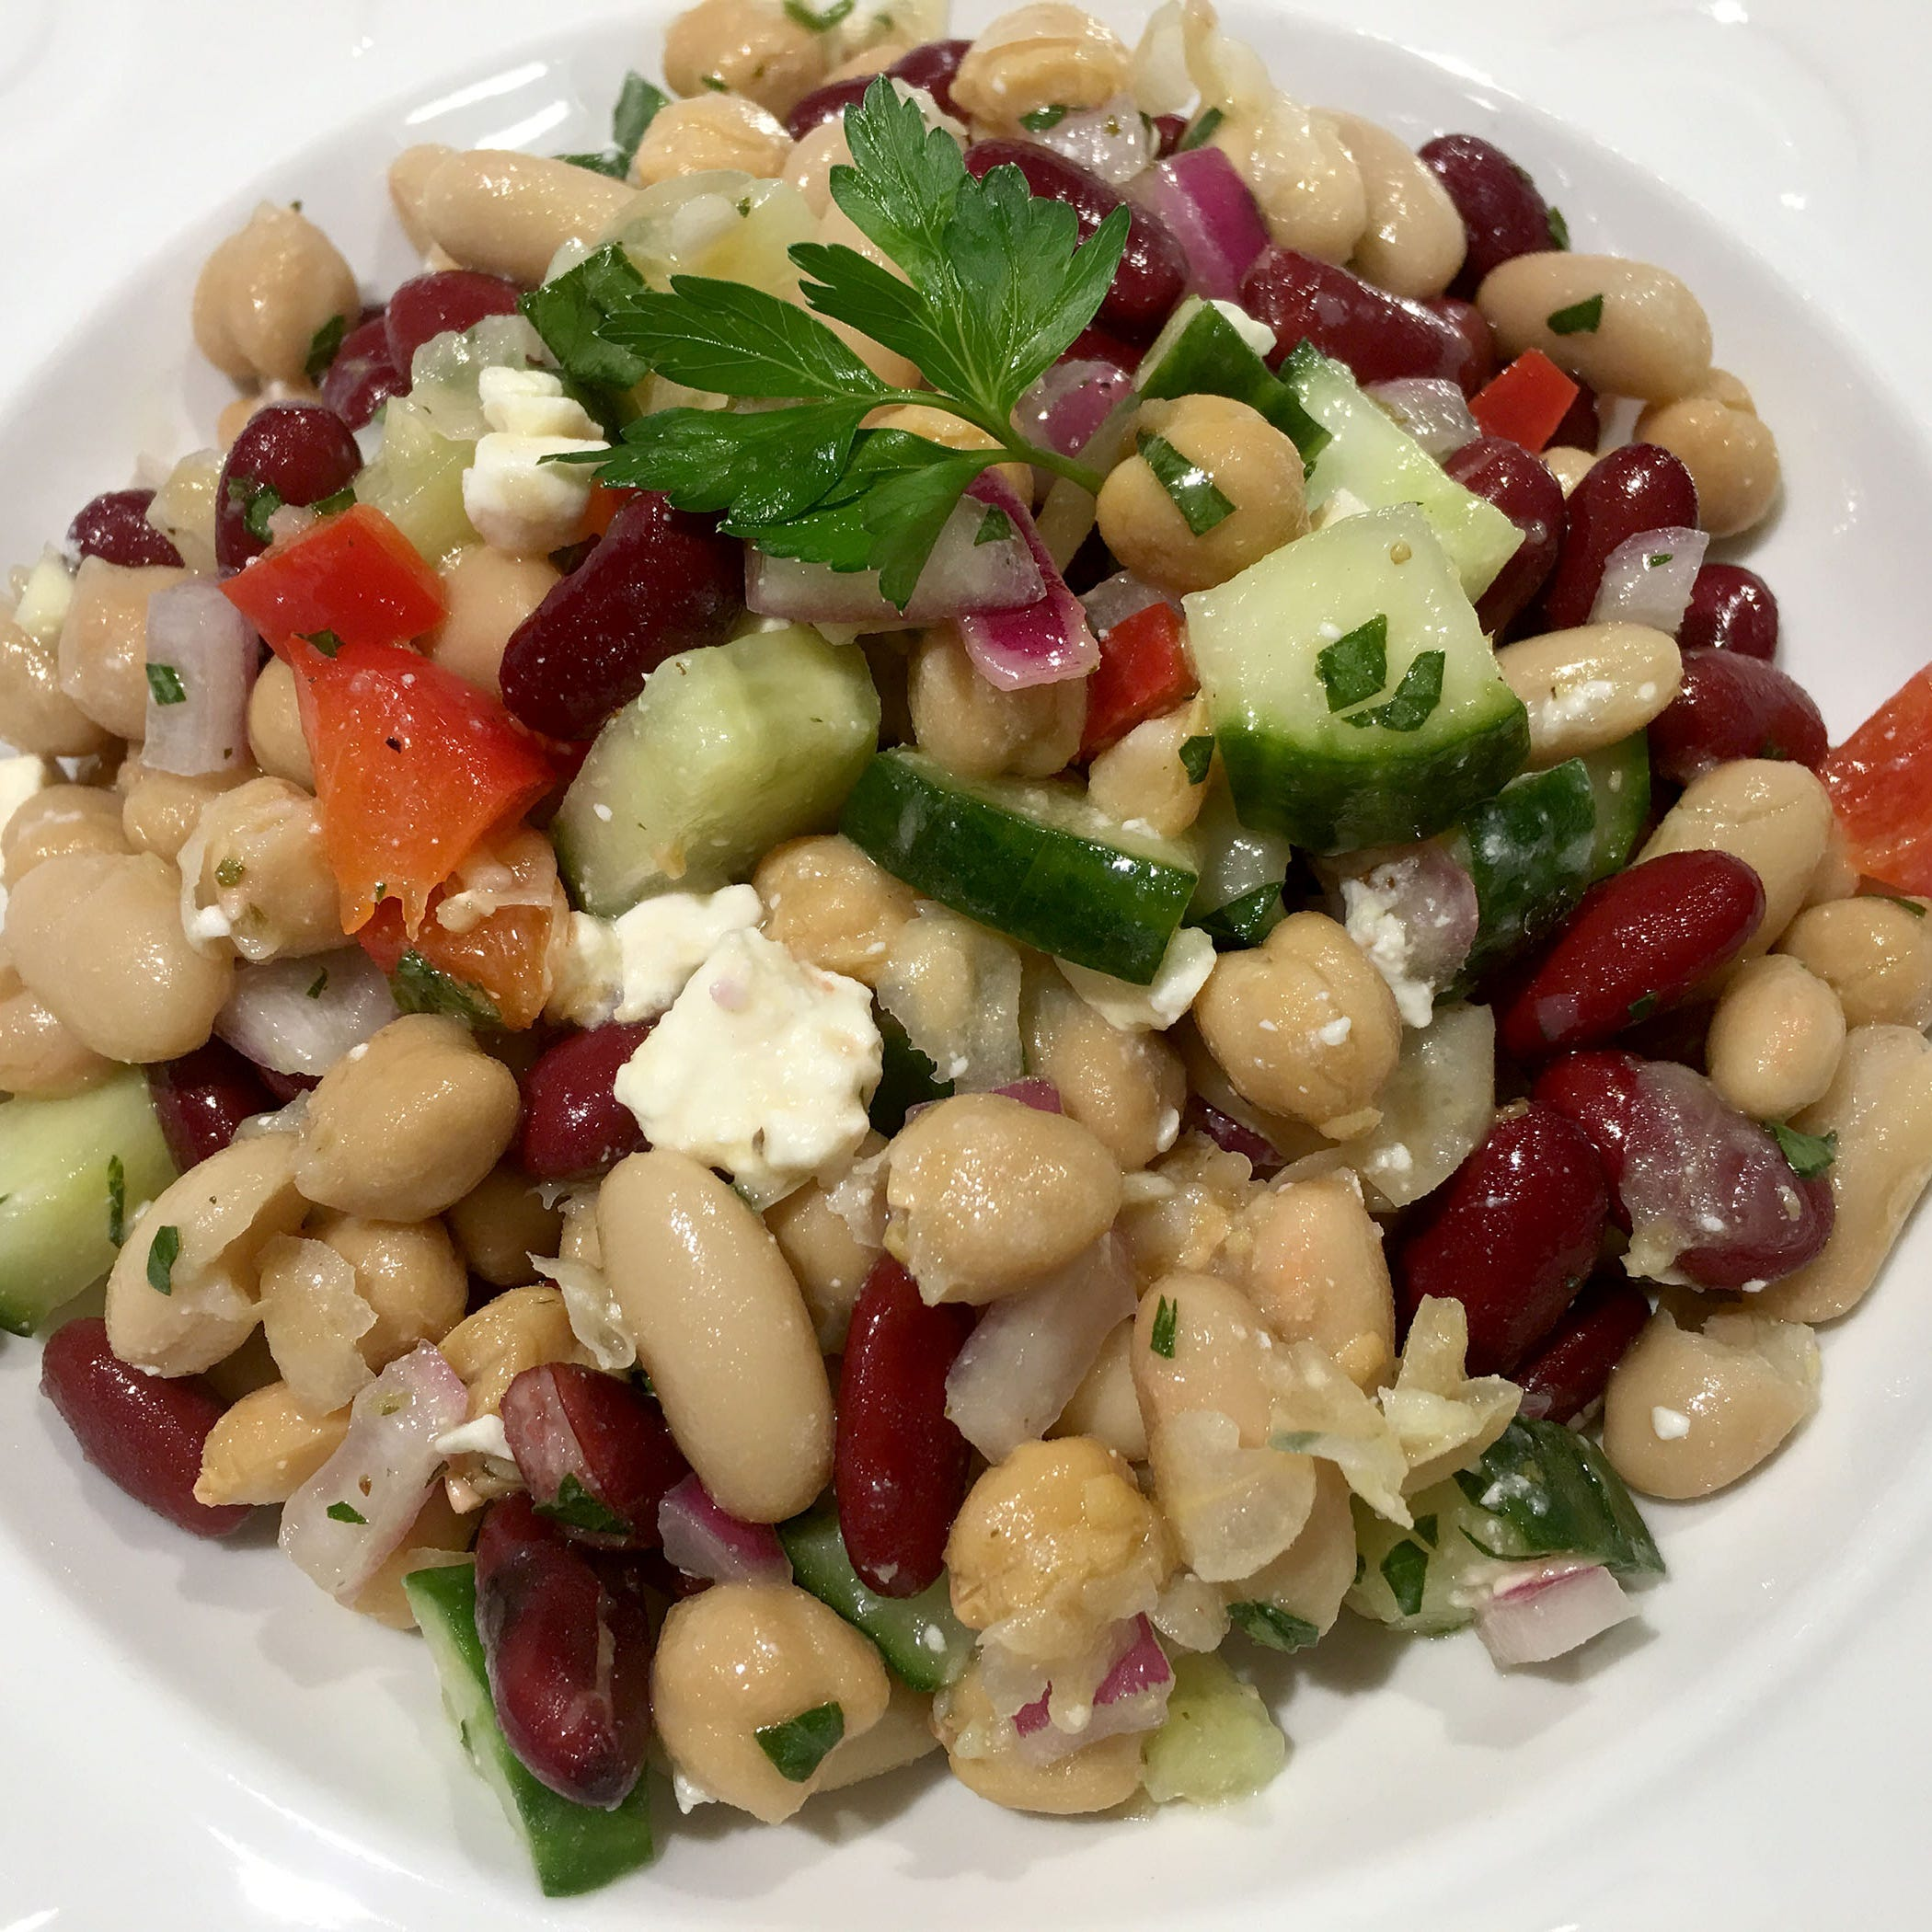 Bean salad perfect for picnics and fits in with Mediterranean diet